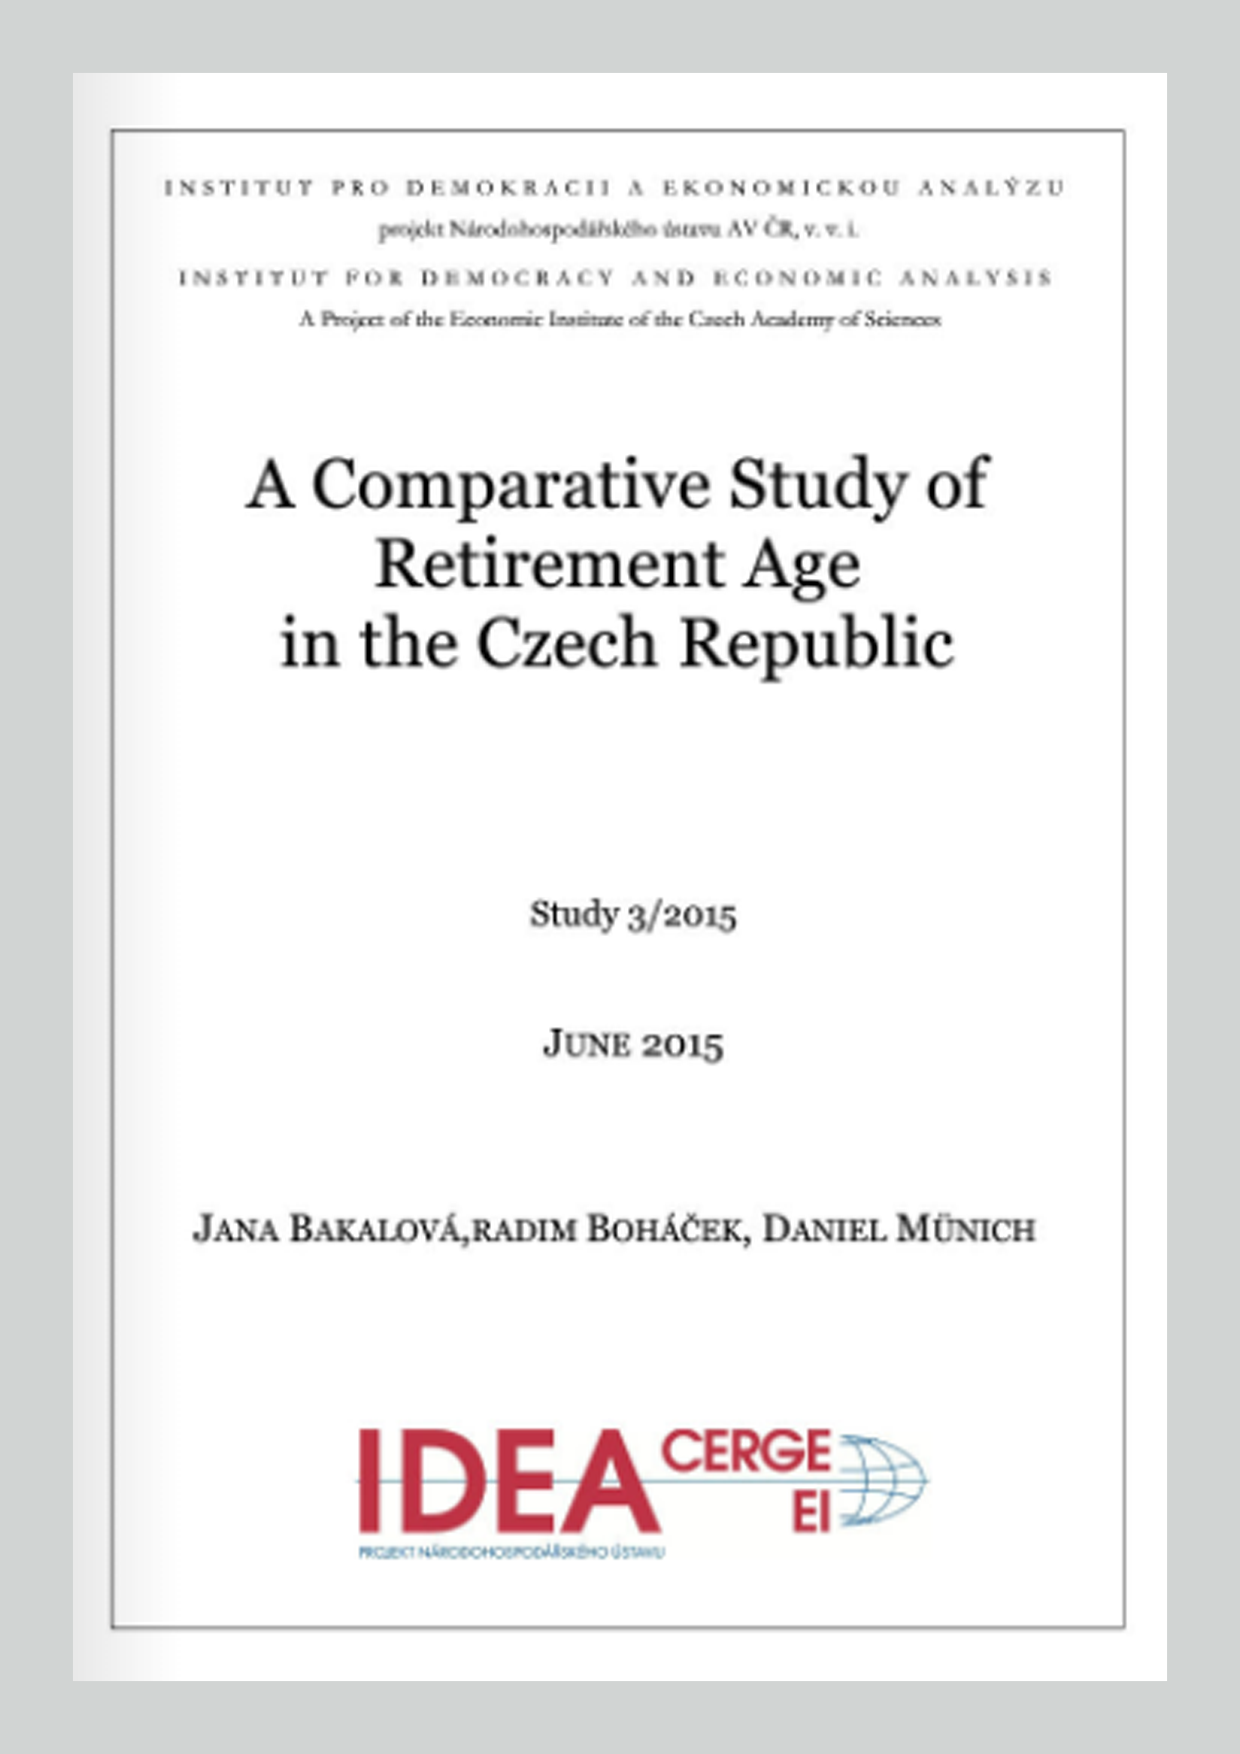 A Comparative Study of Retirement Age in the Czech Republic